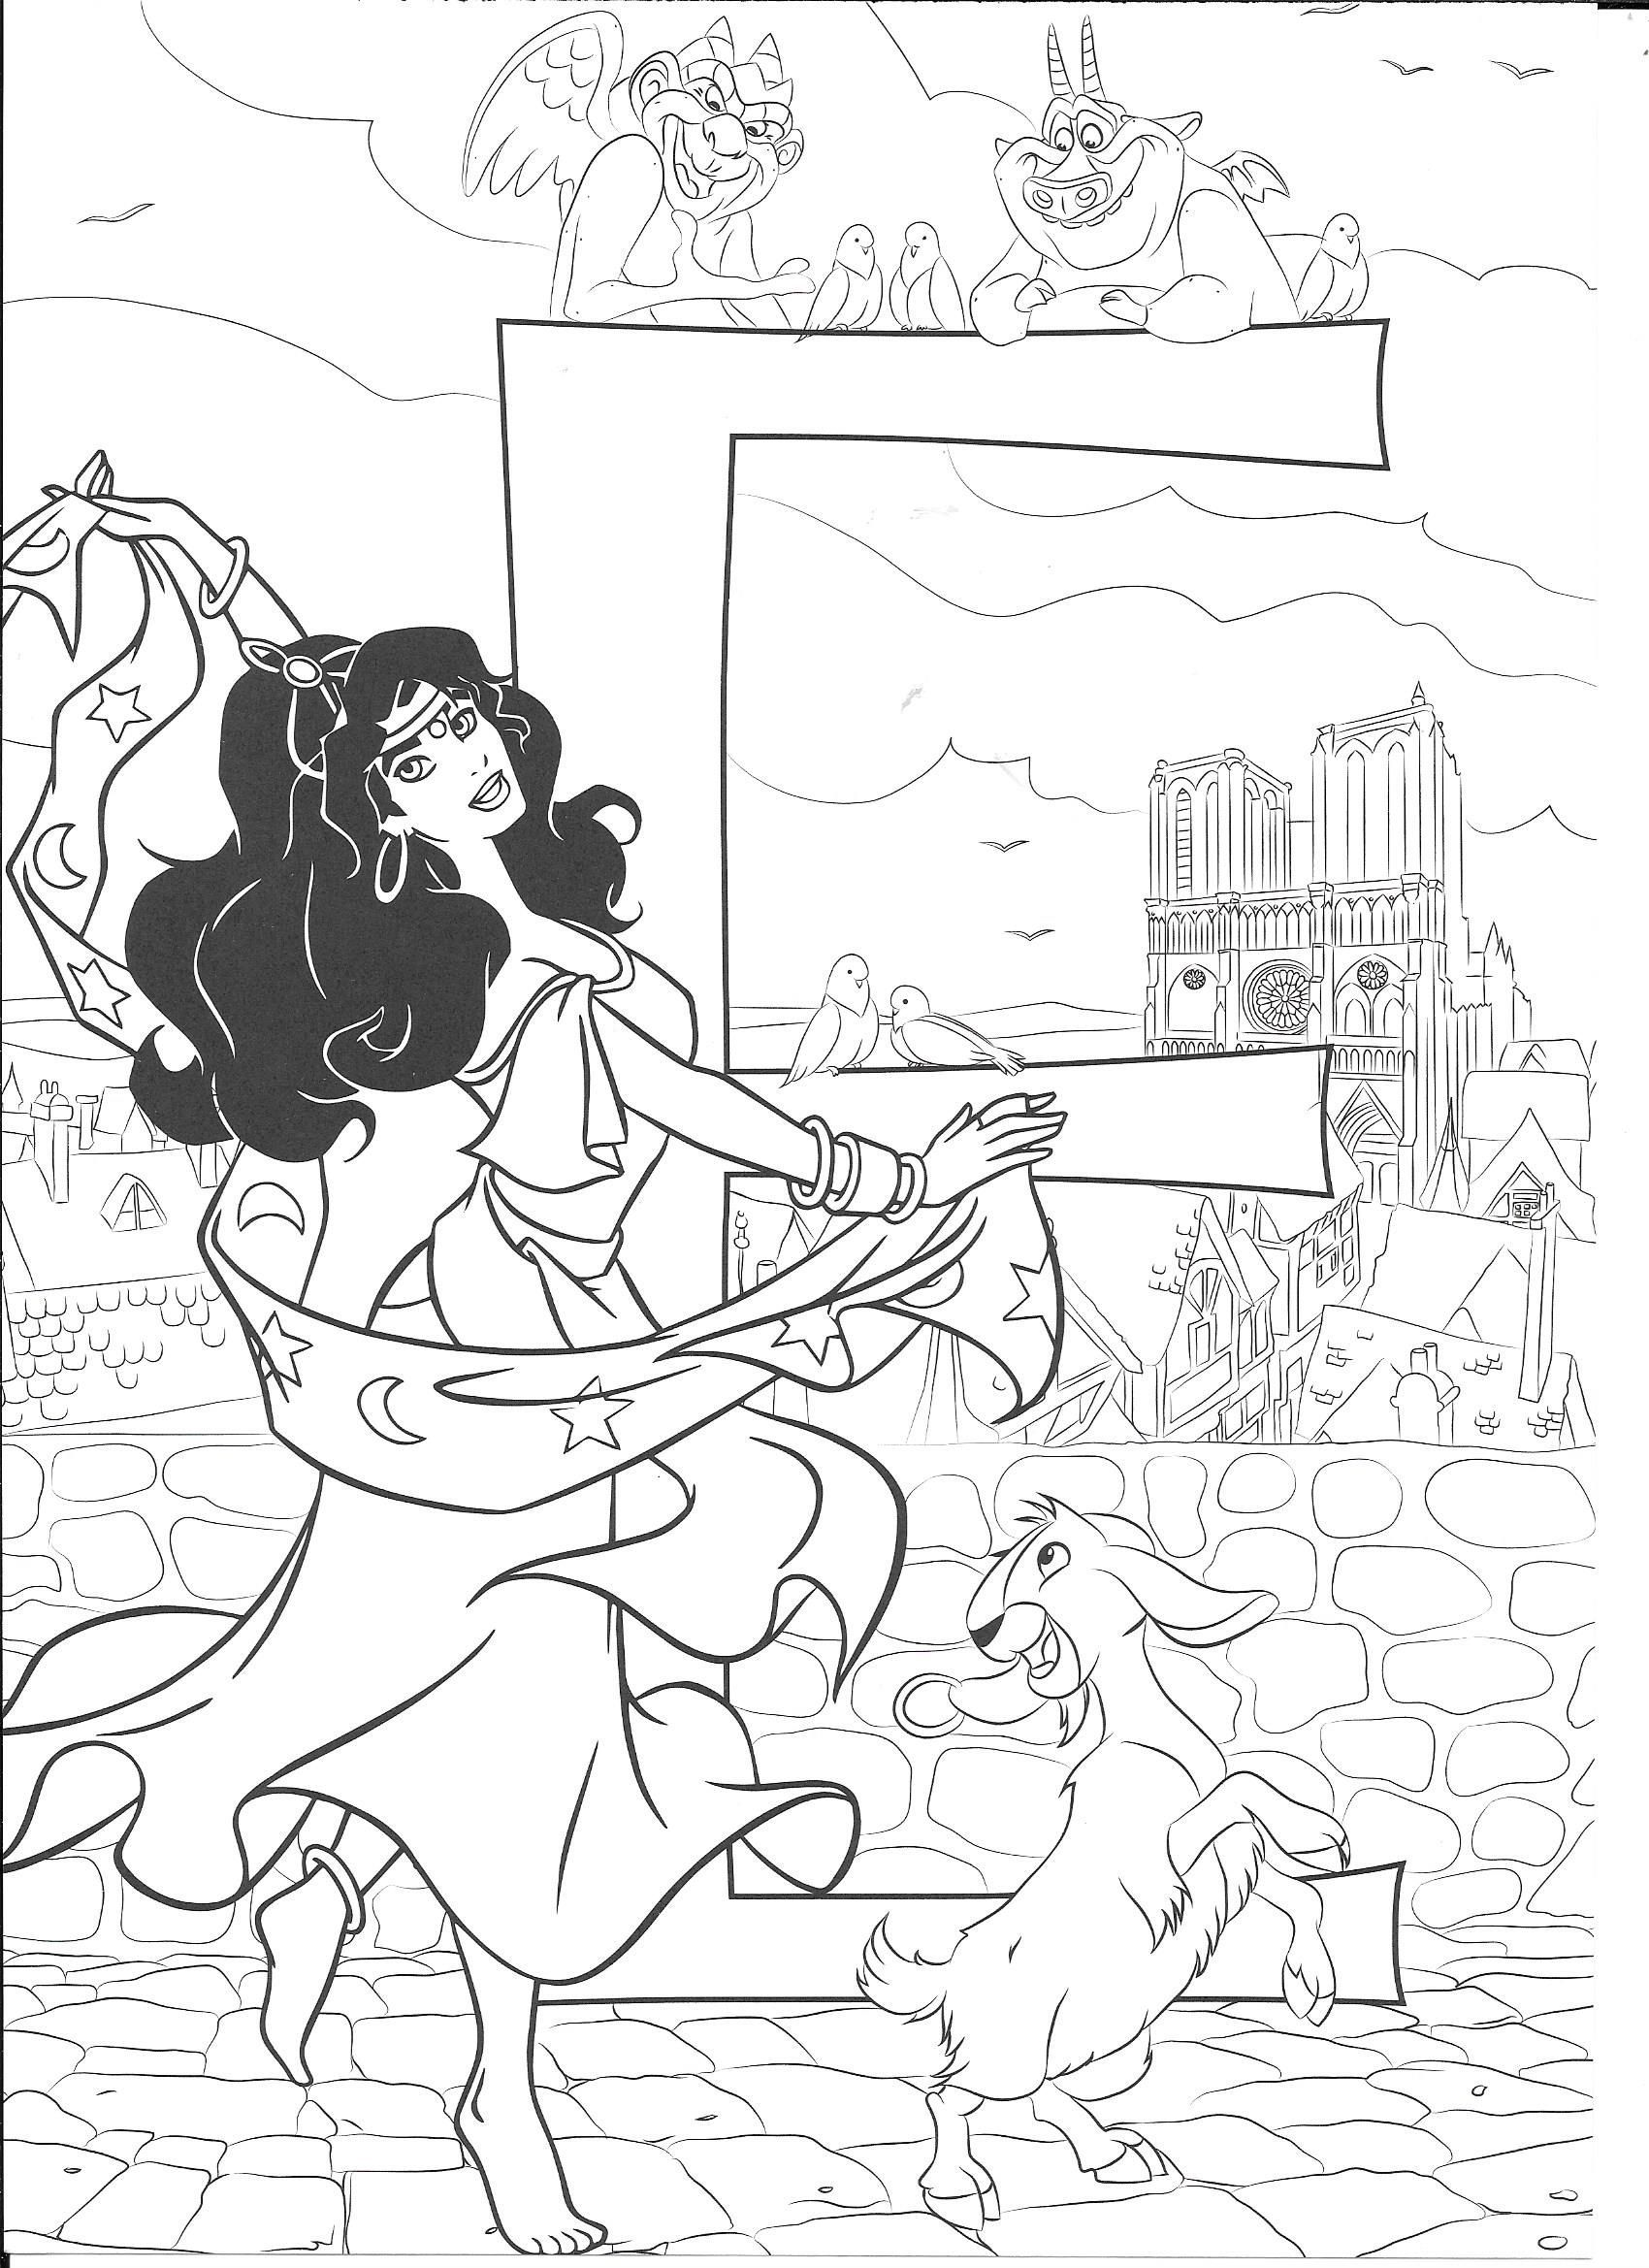 Most Recent Pic Coloring Sheets Disney Suggestions It S No Magic Formula That Colour In 2021 Disney Coloring Pages Printables Disney Coloring Sheets Abc Coloring Pages [ 2338 x 1700 Pixel ]